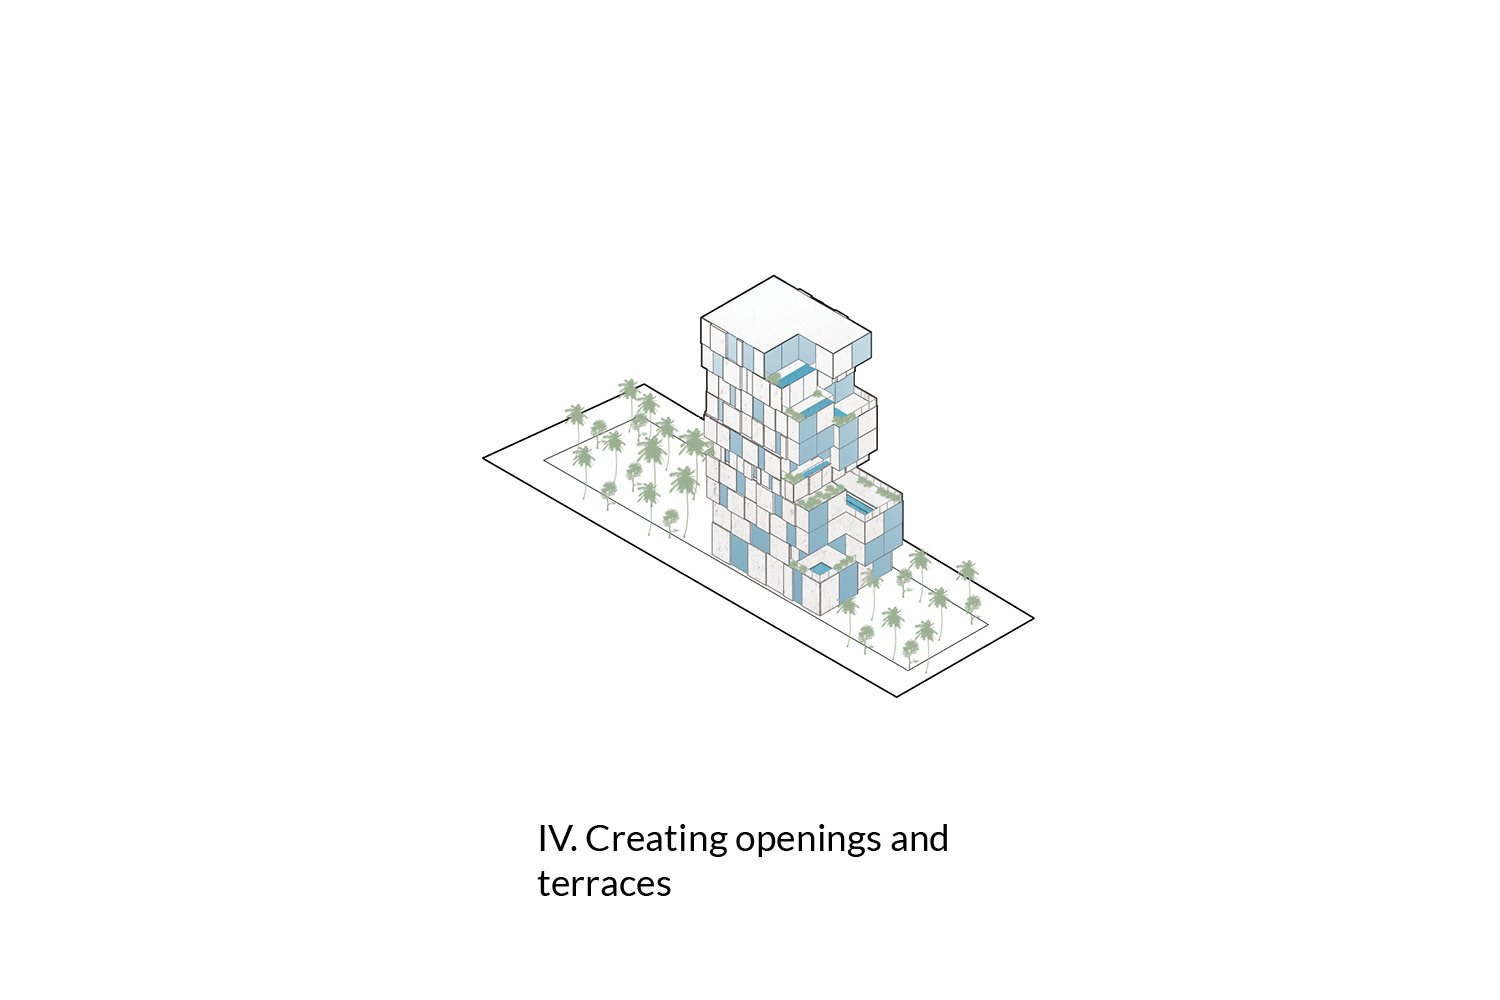 Creating the openings and terraces AVA